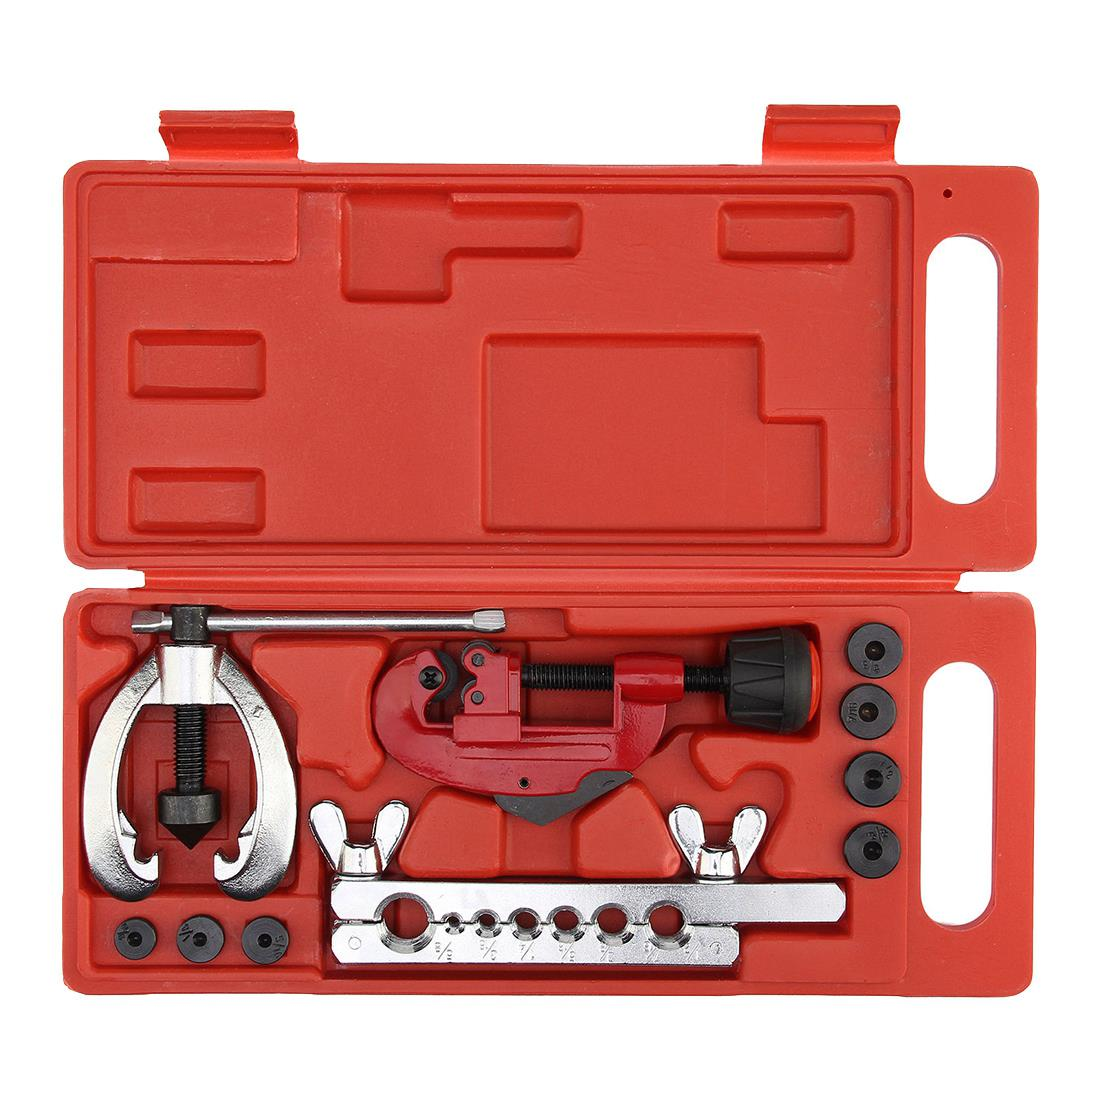 JFBL Hot Heat Treated Steel, metal Tube Cutter Brake Fuel Pipe Repair Double Flaring Die Tool Set Clamp KitFor Cutting And Fla 10 pcs jfbl hot sale high quality repair part deburred tool 10pcs bs1010 s10 1pcs nb1100 deburring tool blades